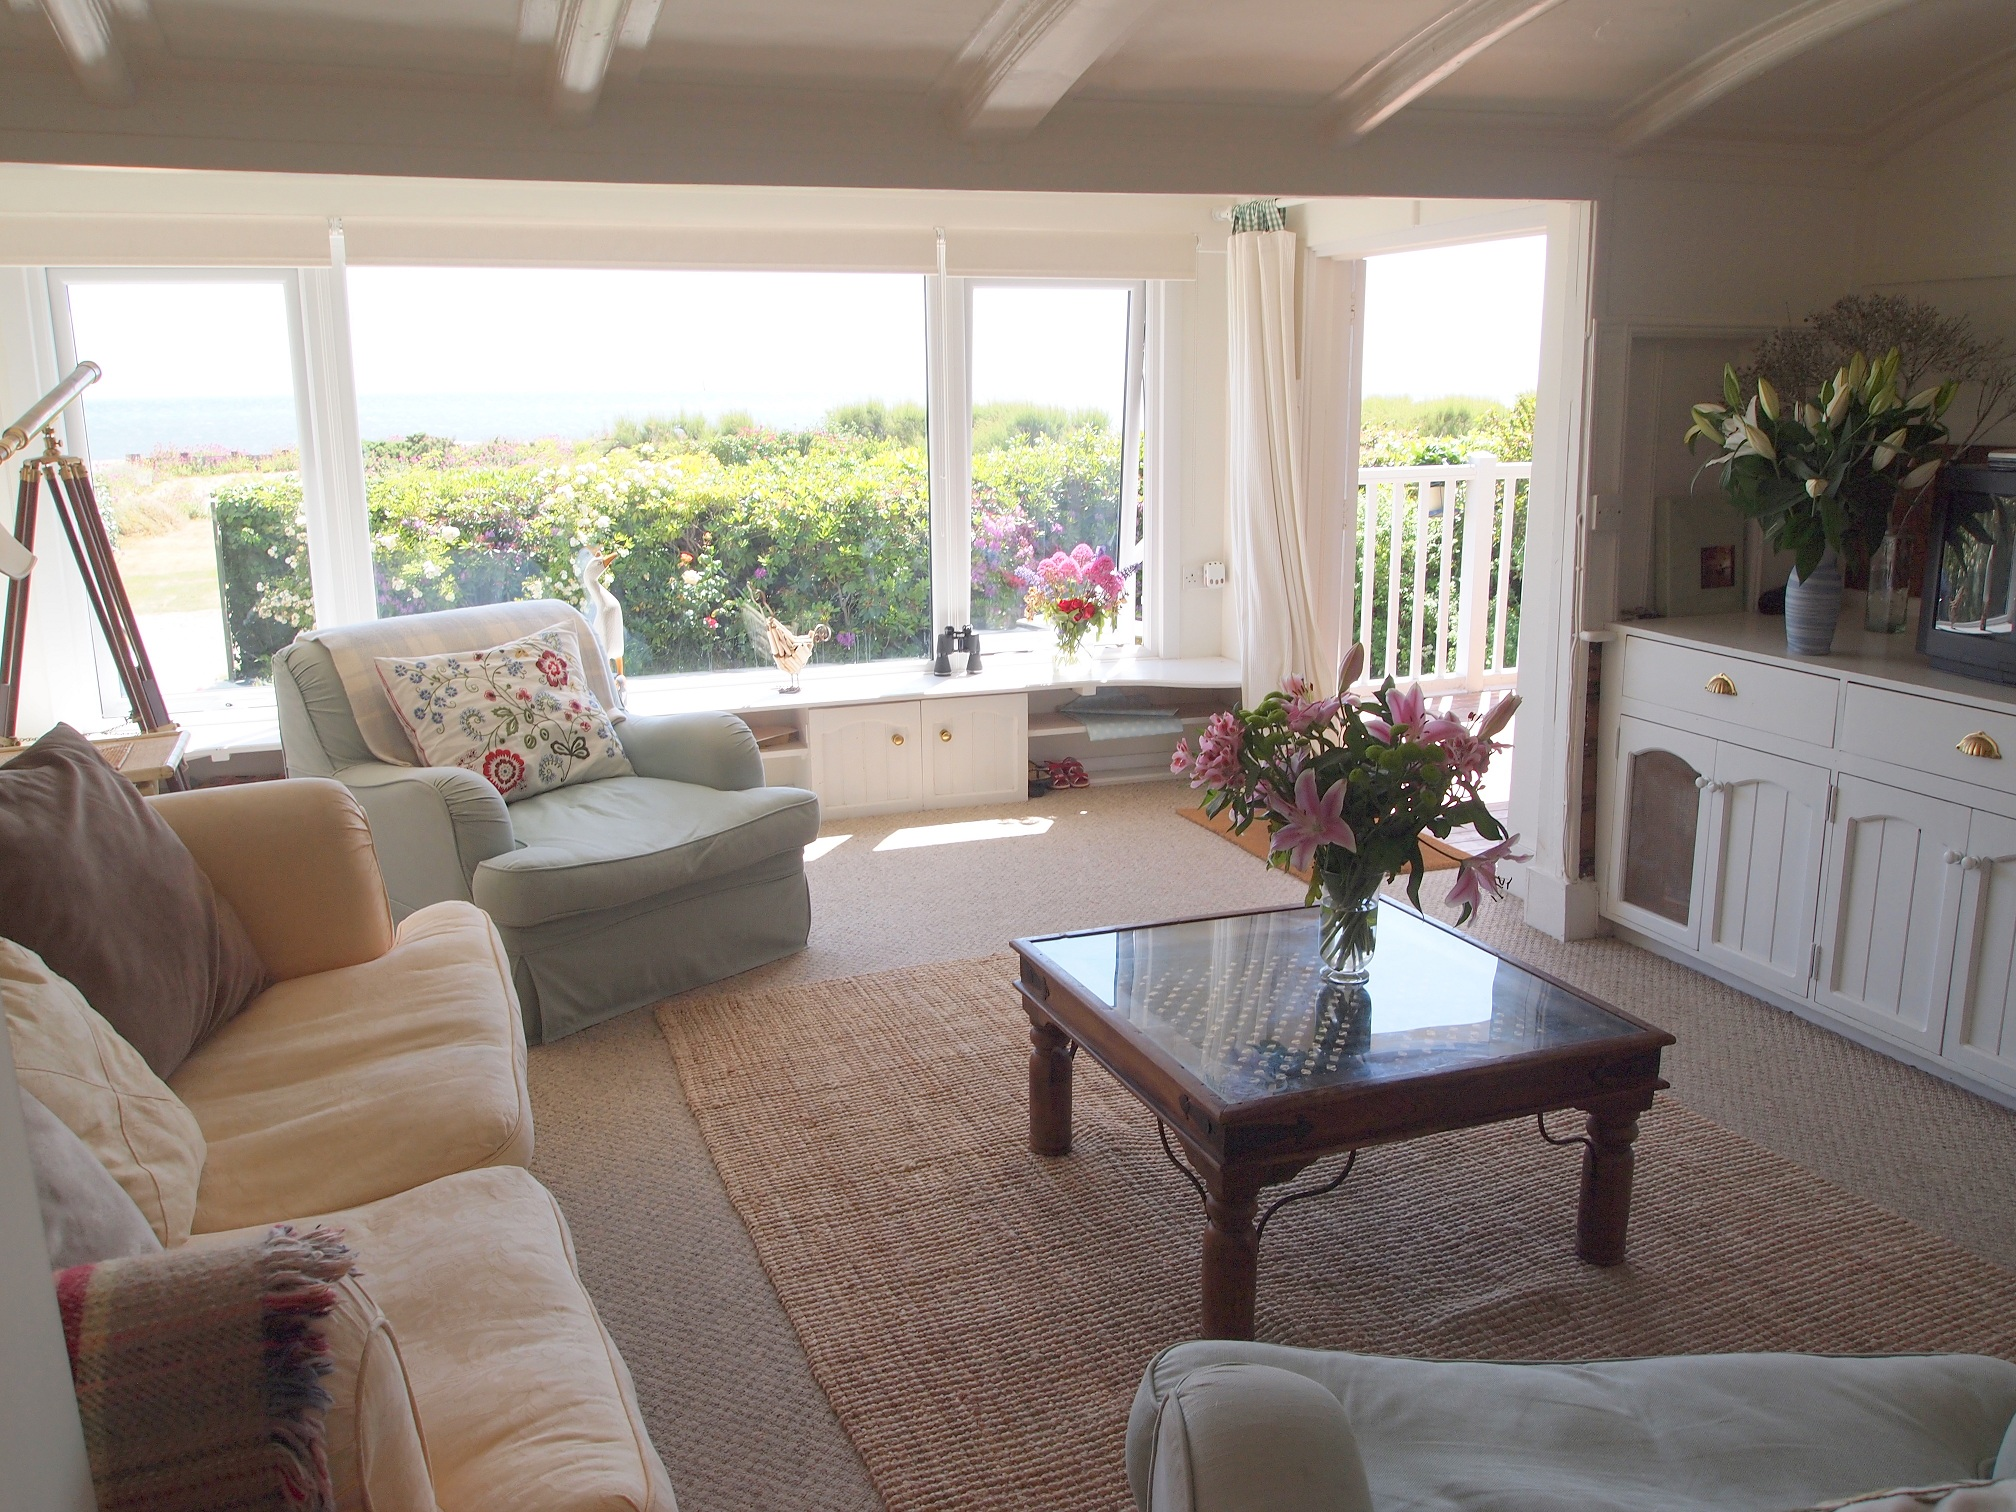 Sitting room with sea view